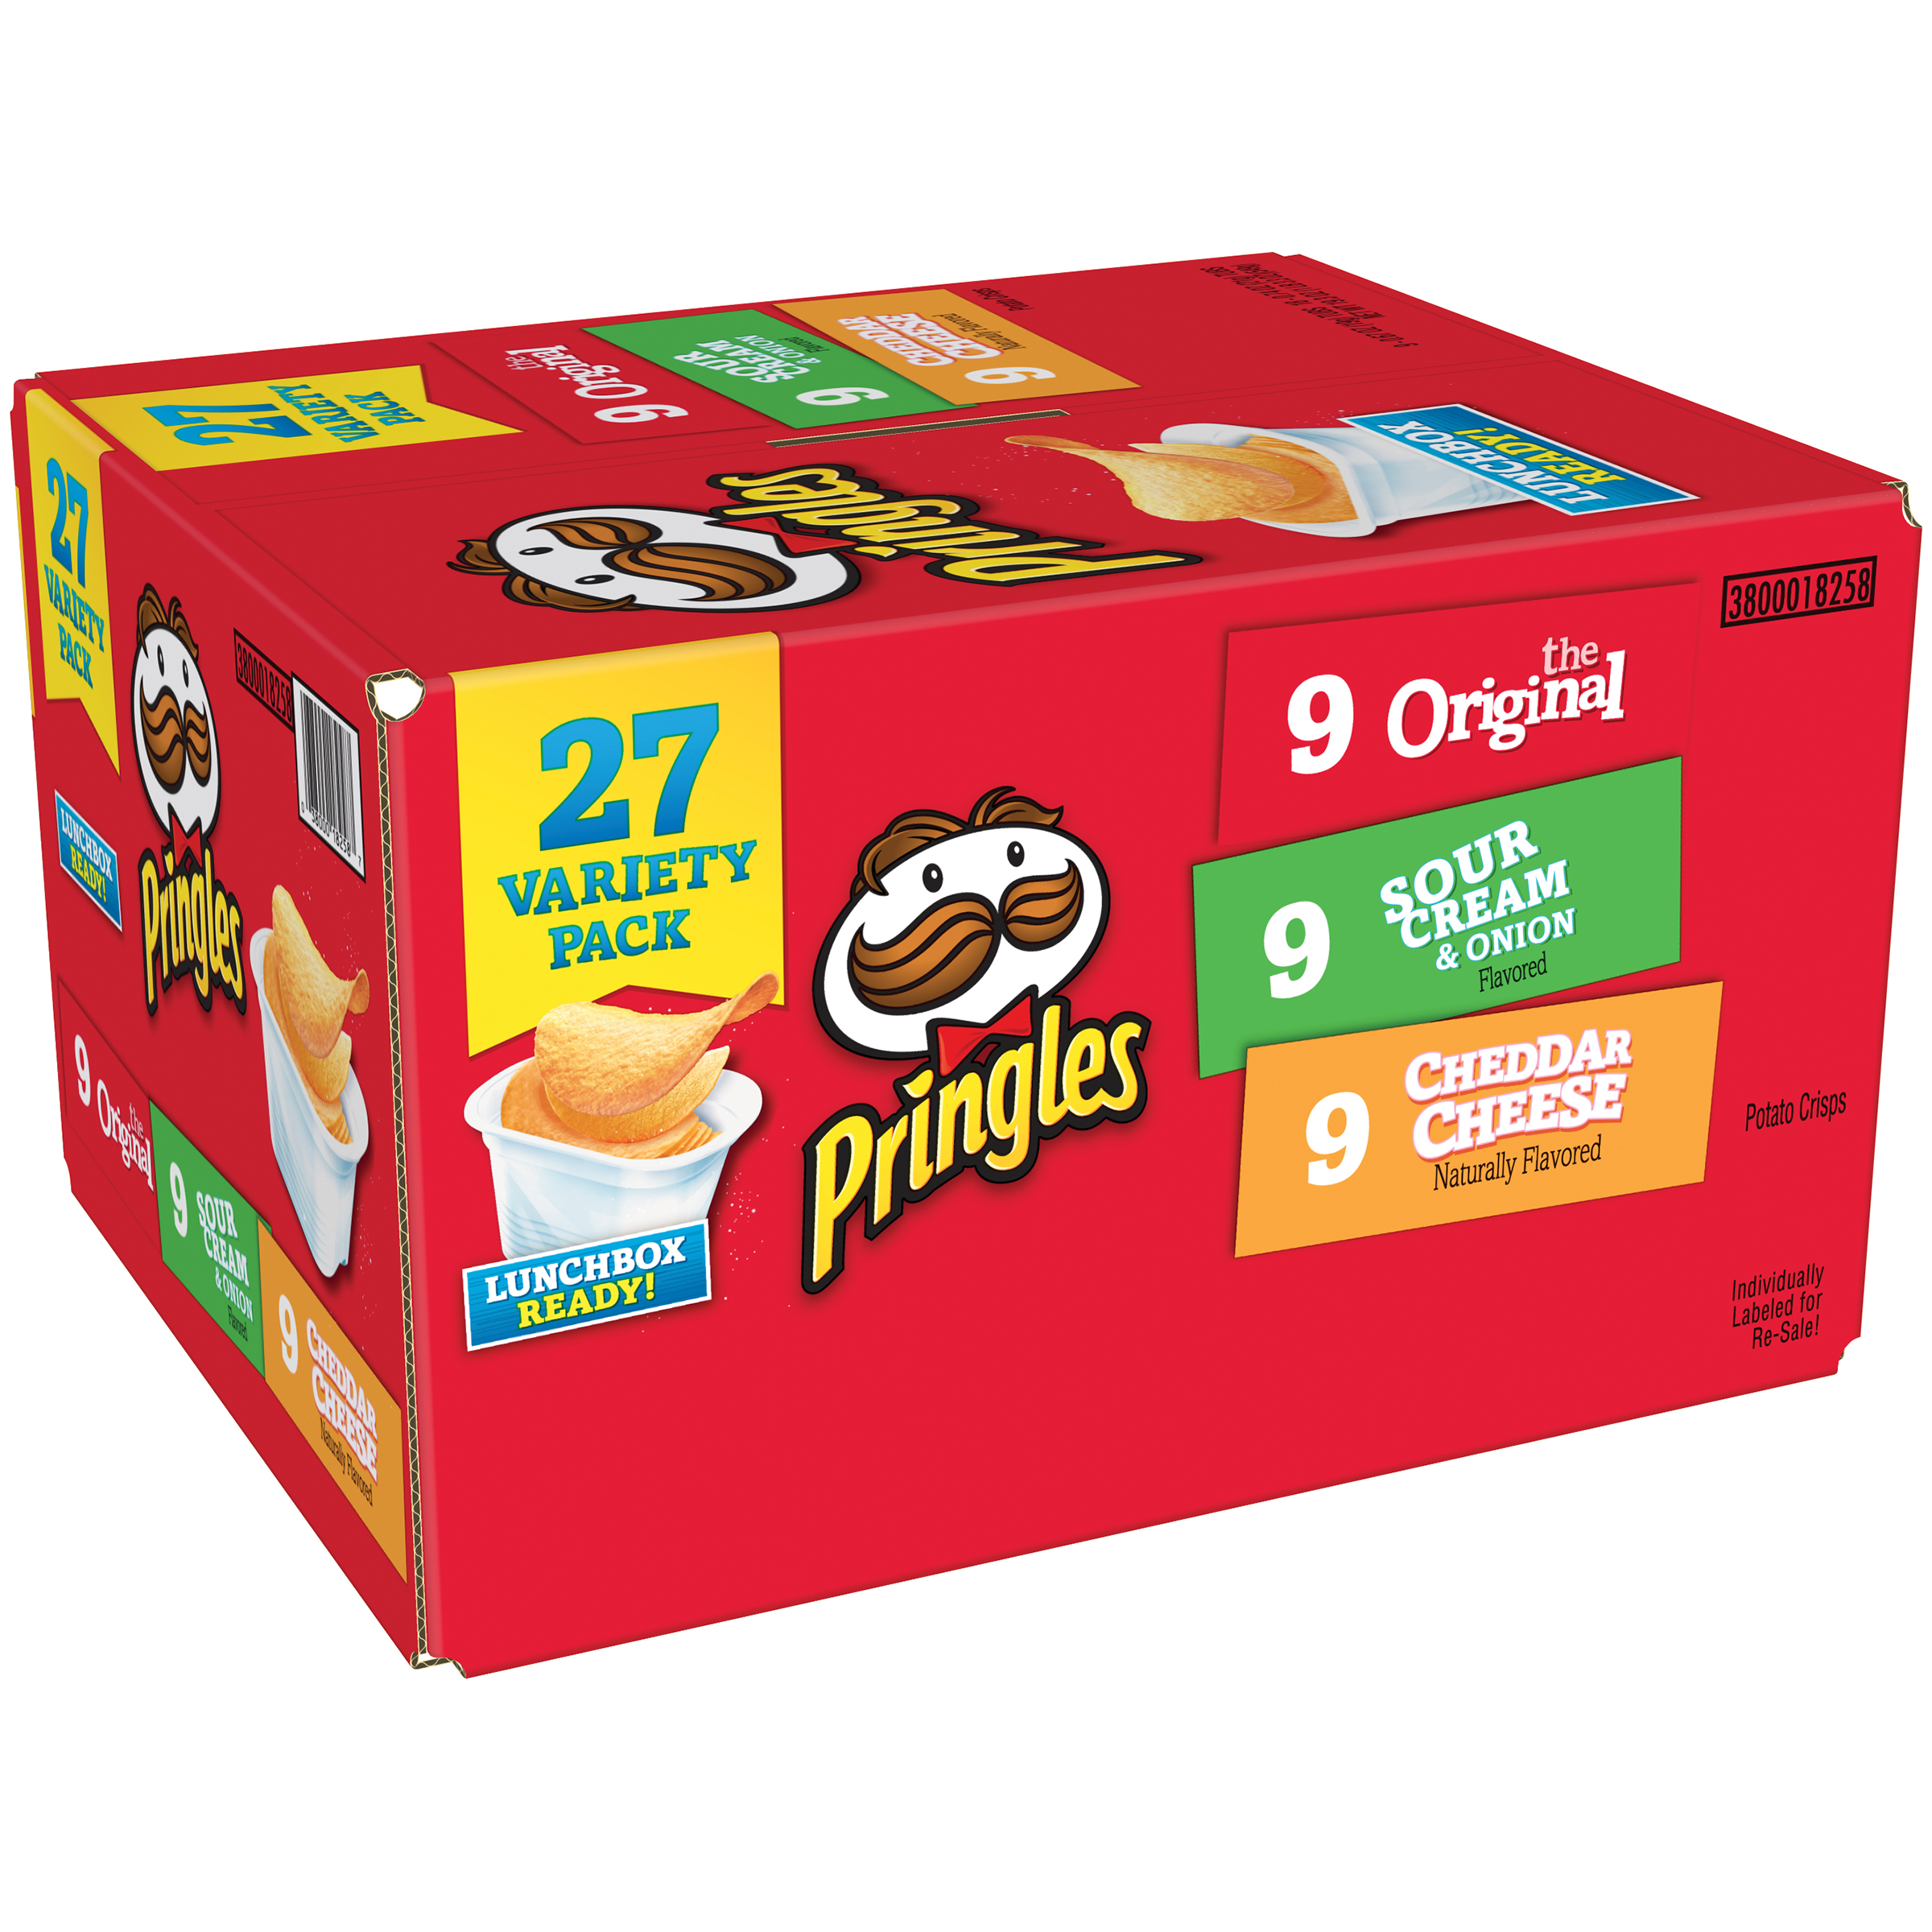 Pringles Original, Sour Cream & Onion and Cheddar Cheese Potato Crisps Chips Variety Pack 27 ct